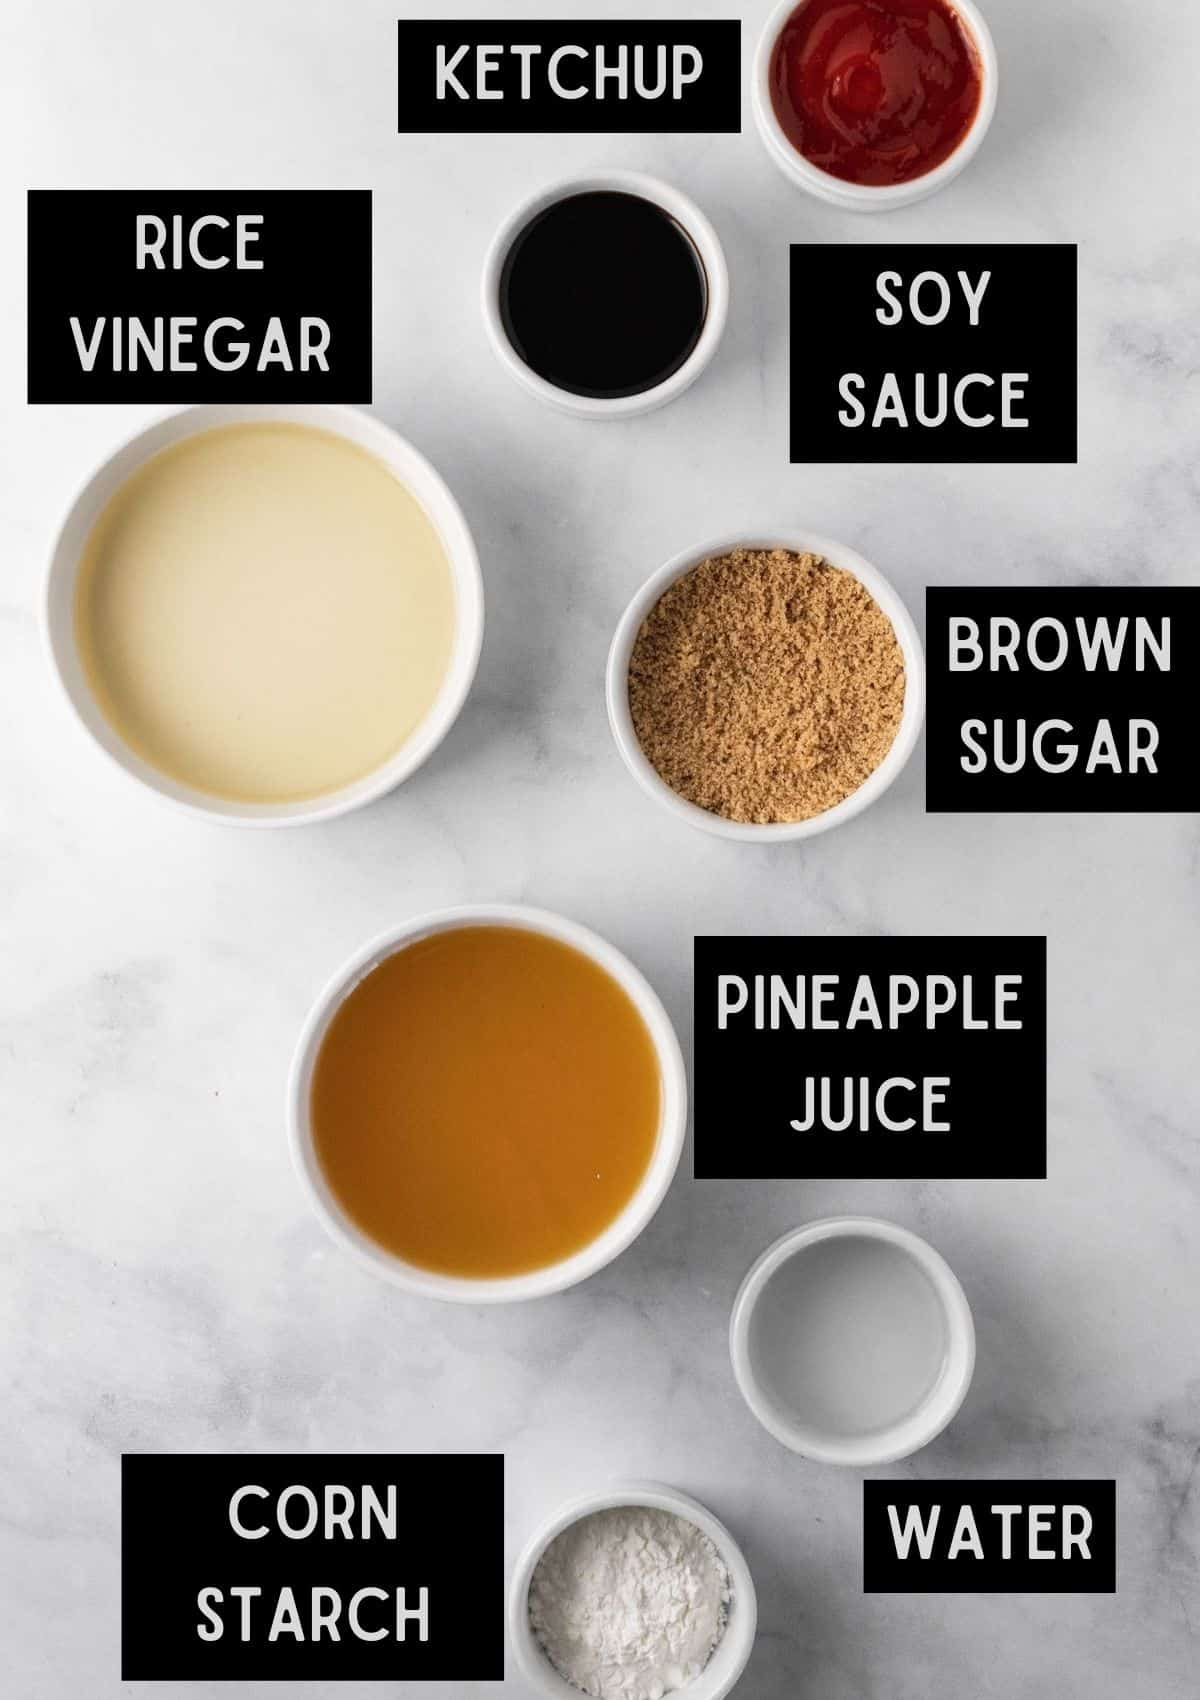 Labelled ingredients for sweet and sour sauce (see recipe for details).